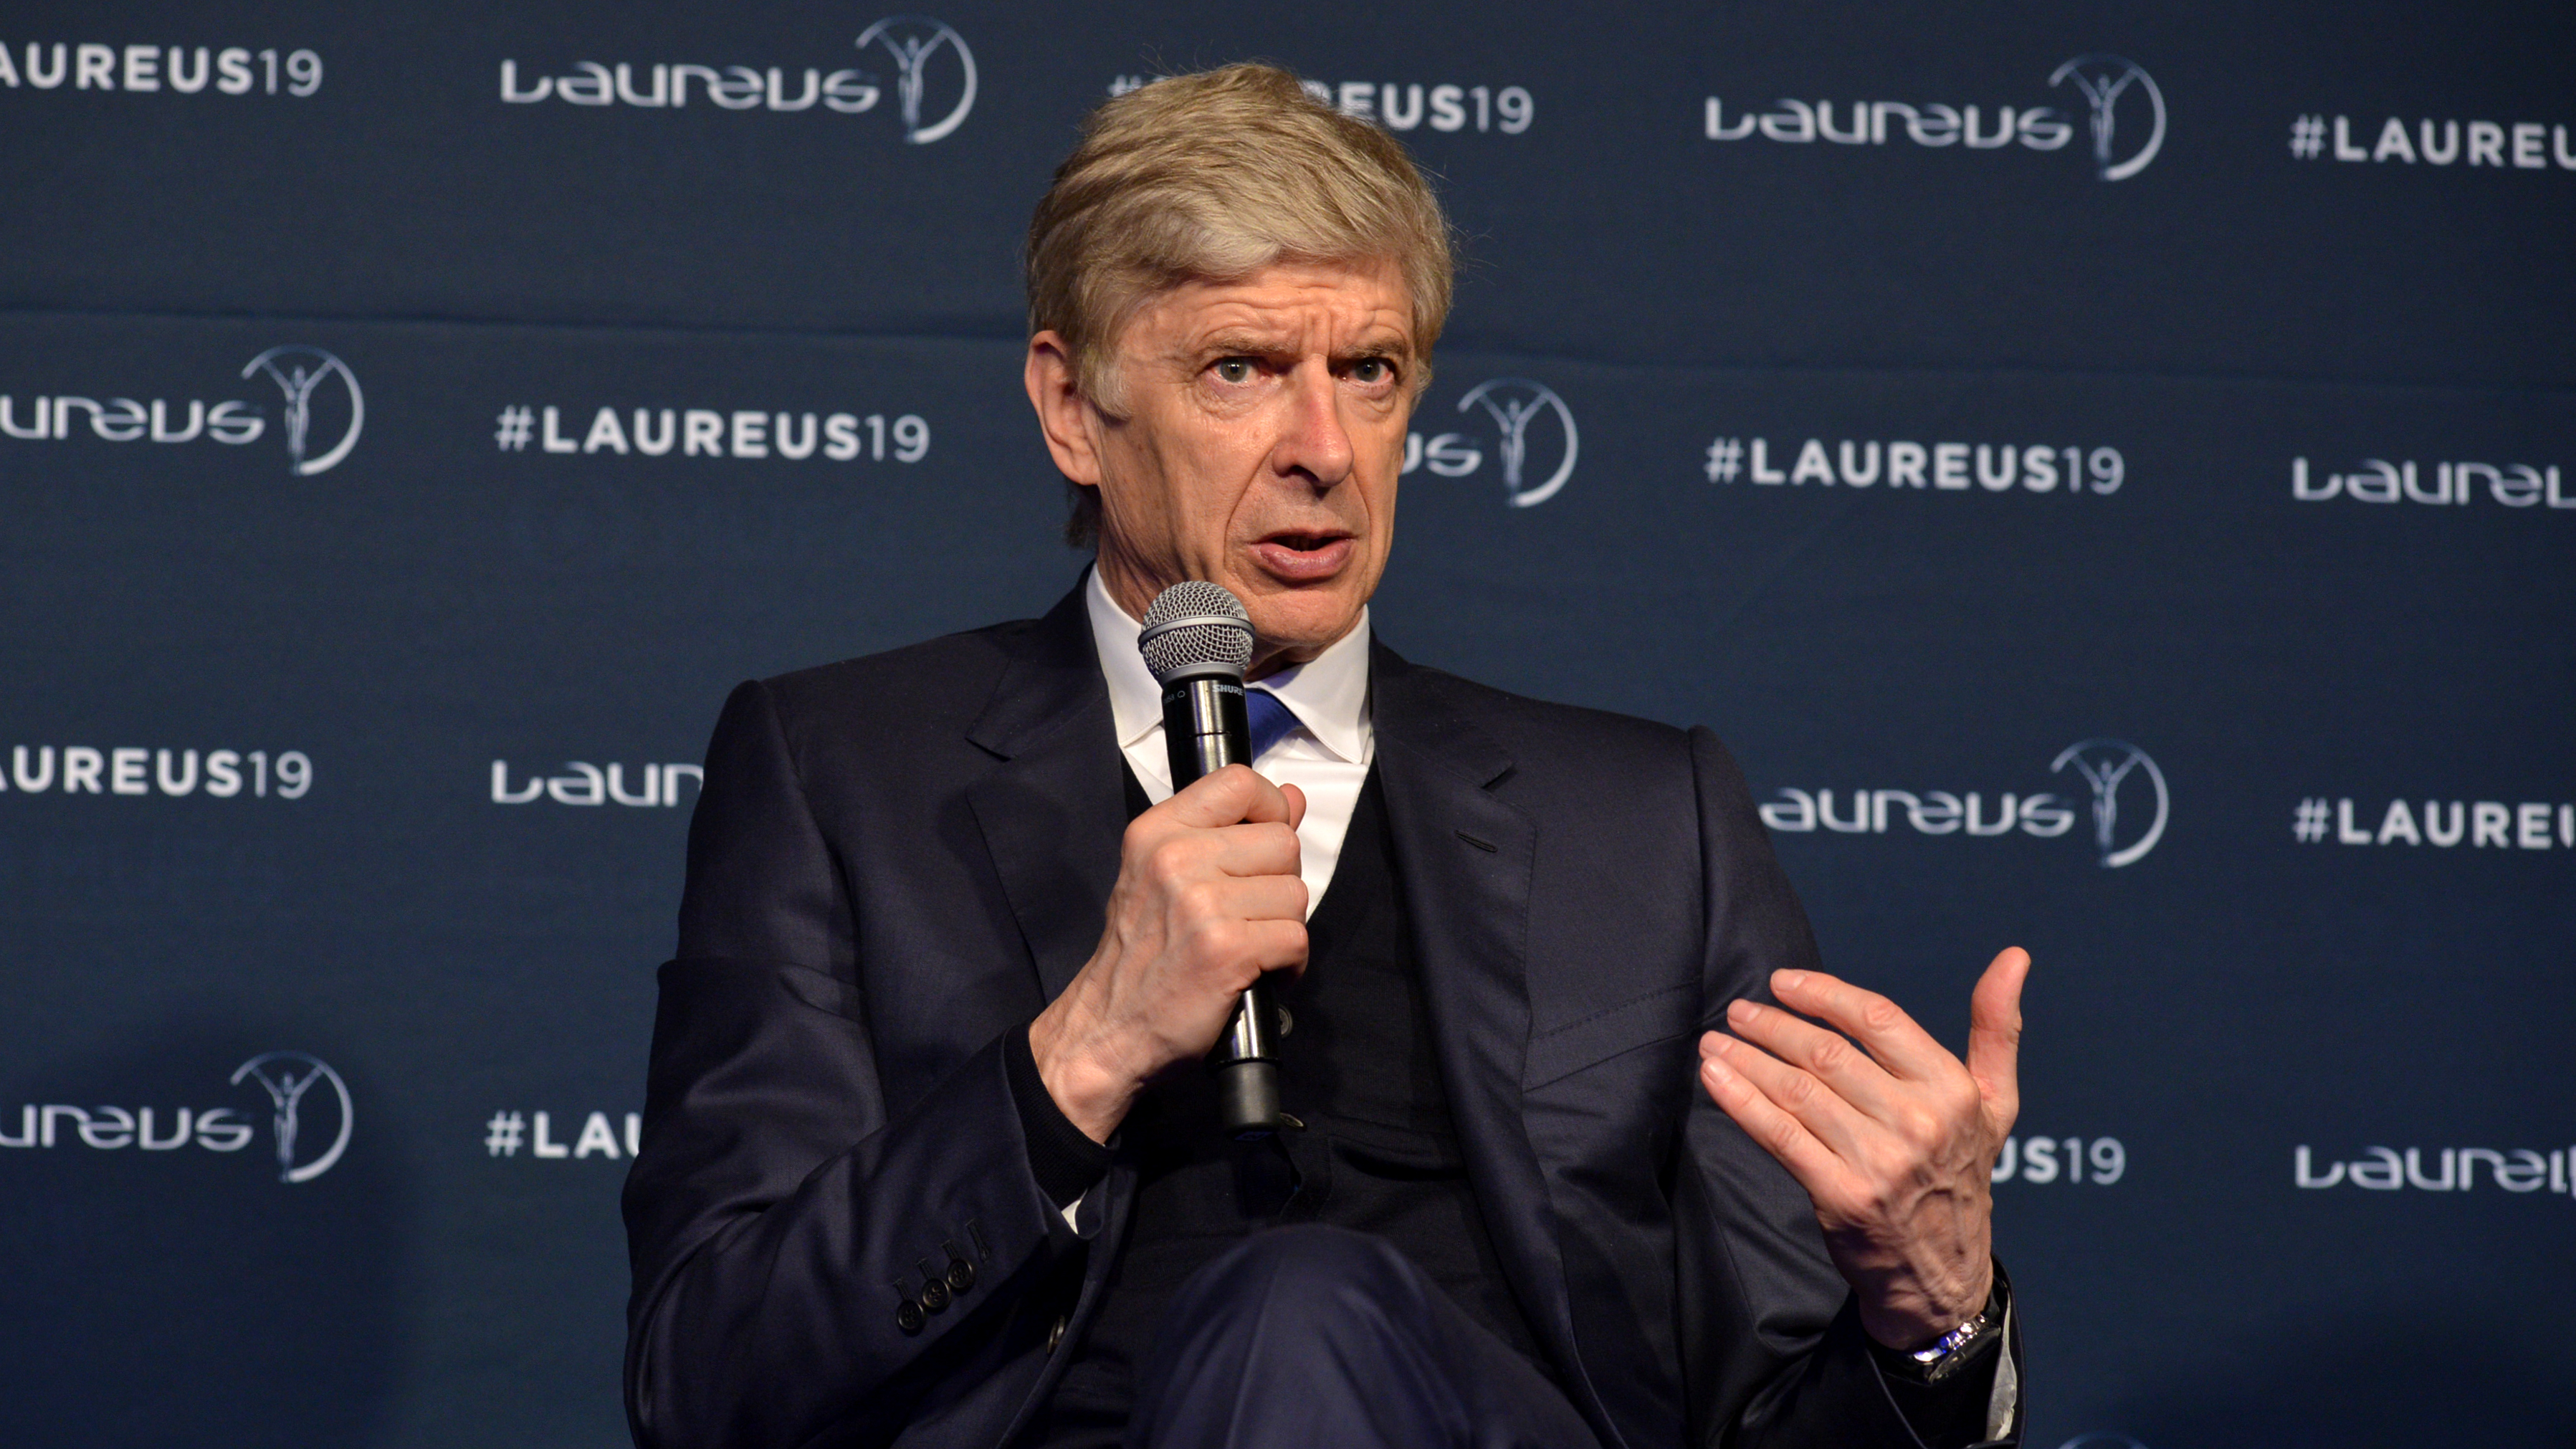 Arsene Wenger says he will talk to Bayern leadership next week